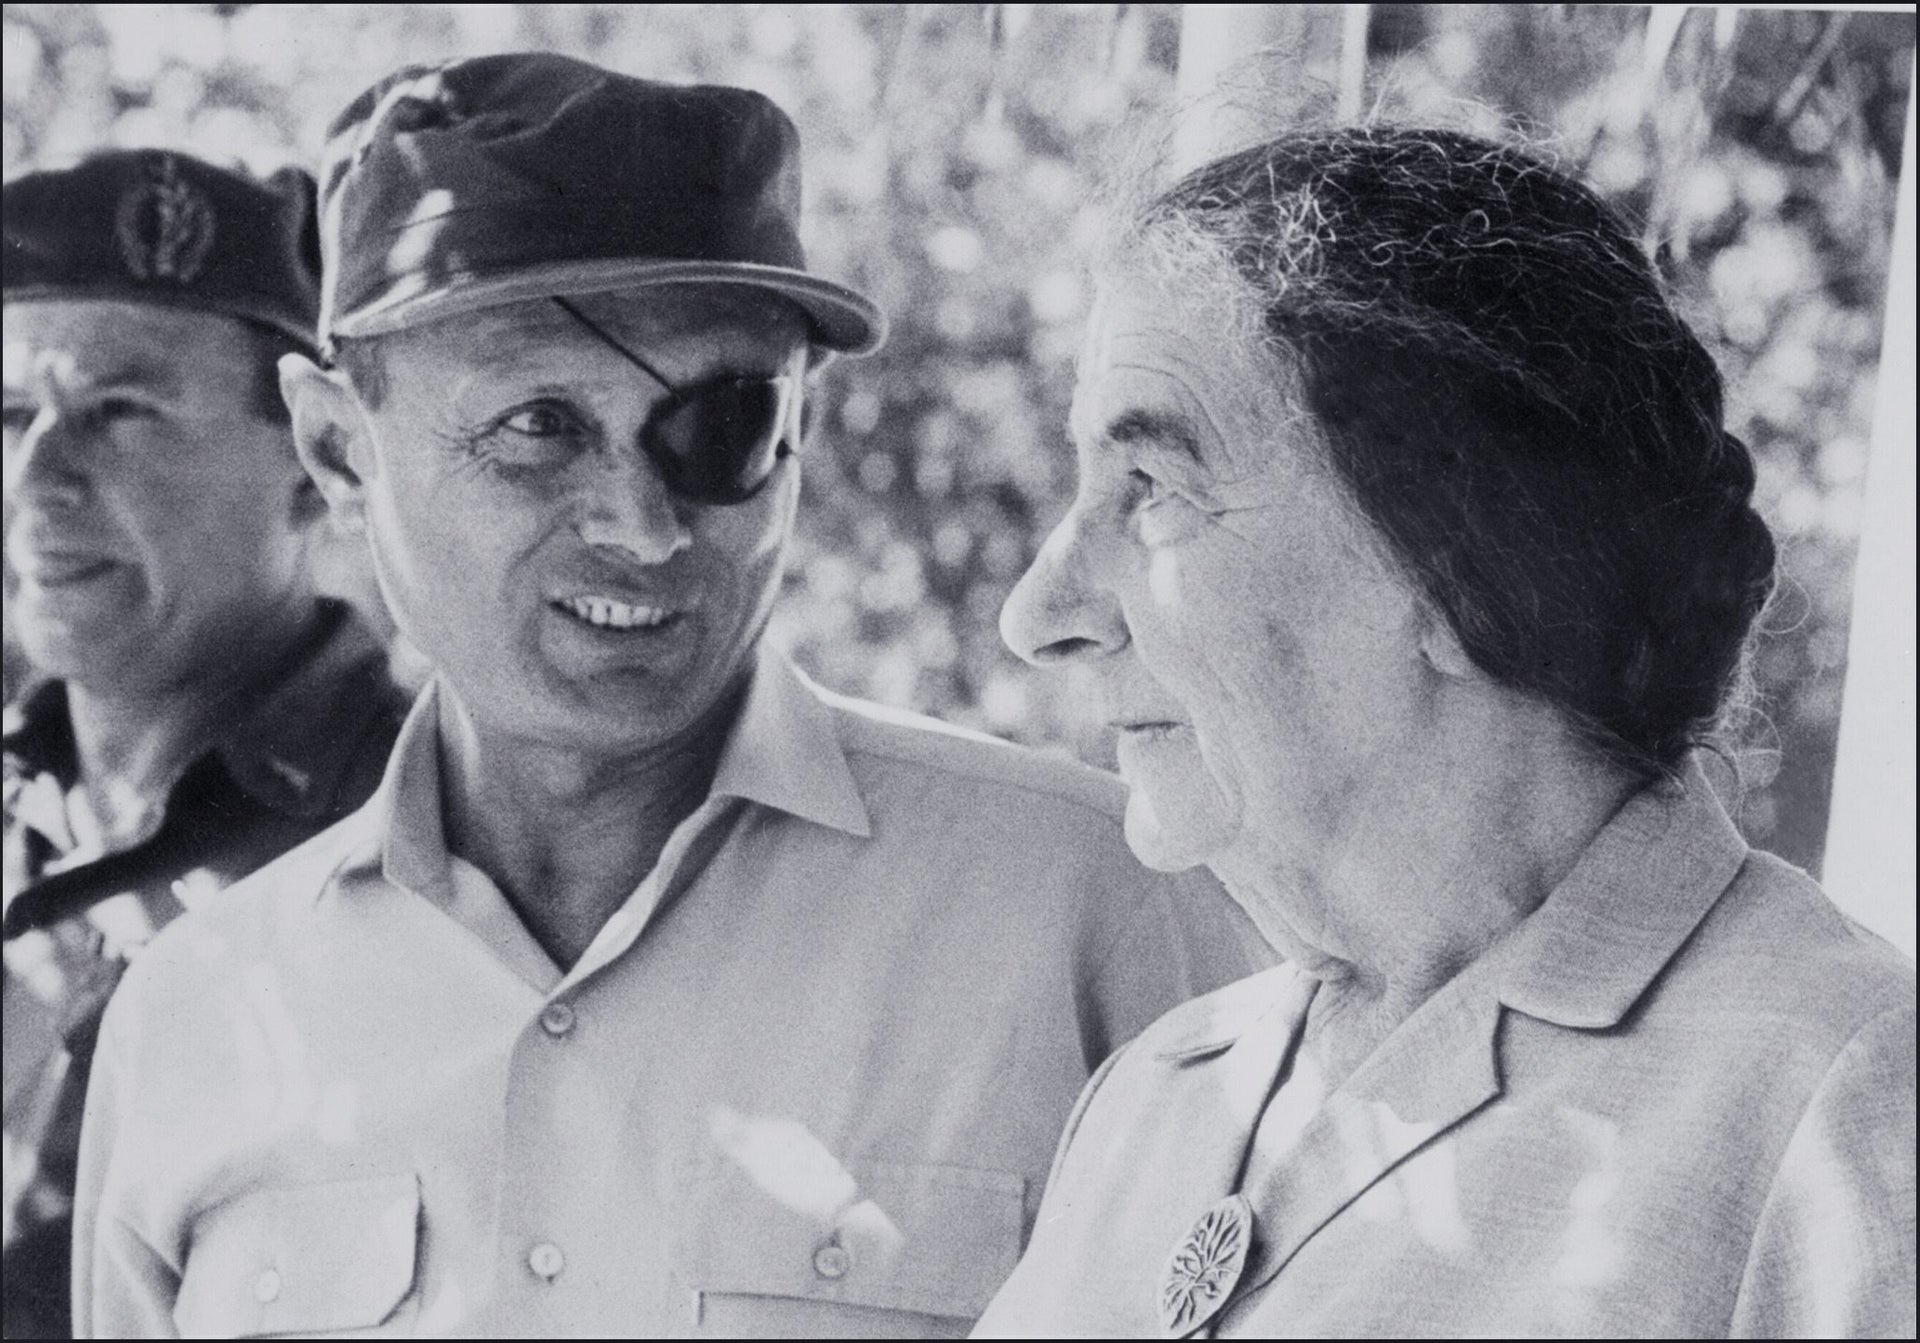 Defense Minister Moshe Dayan and Prime Minister Golda Meir in July 1969.